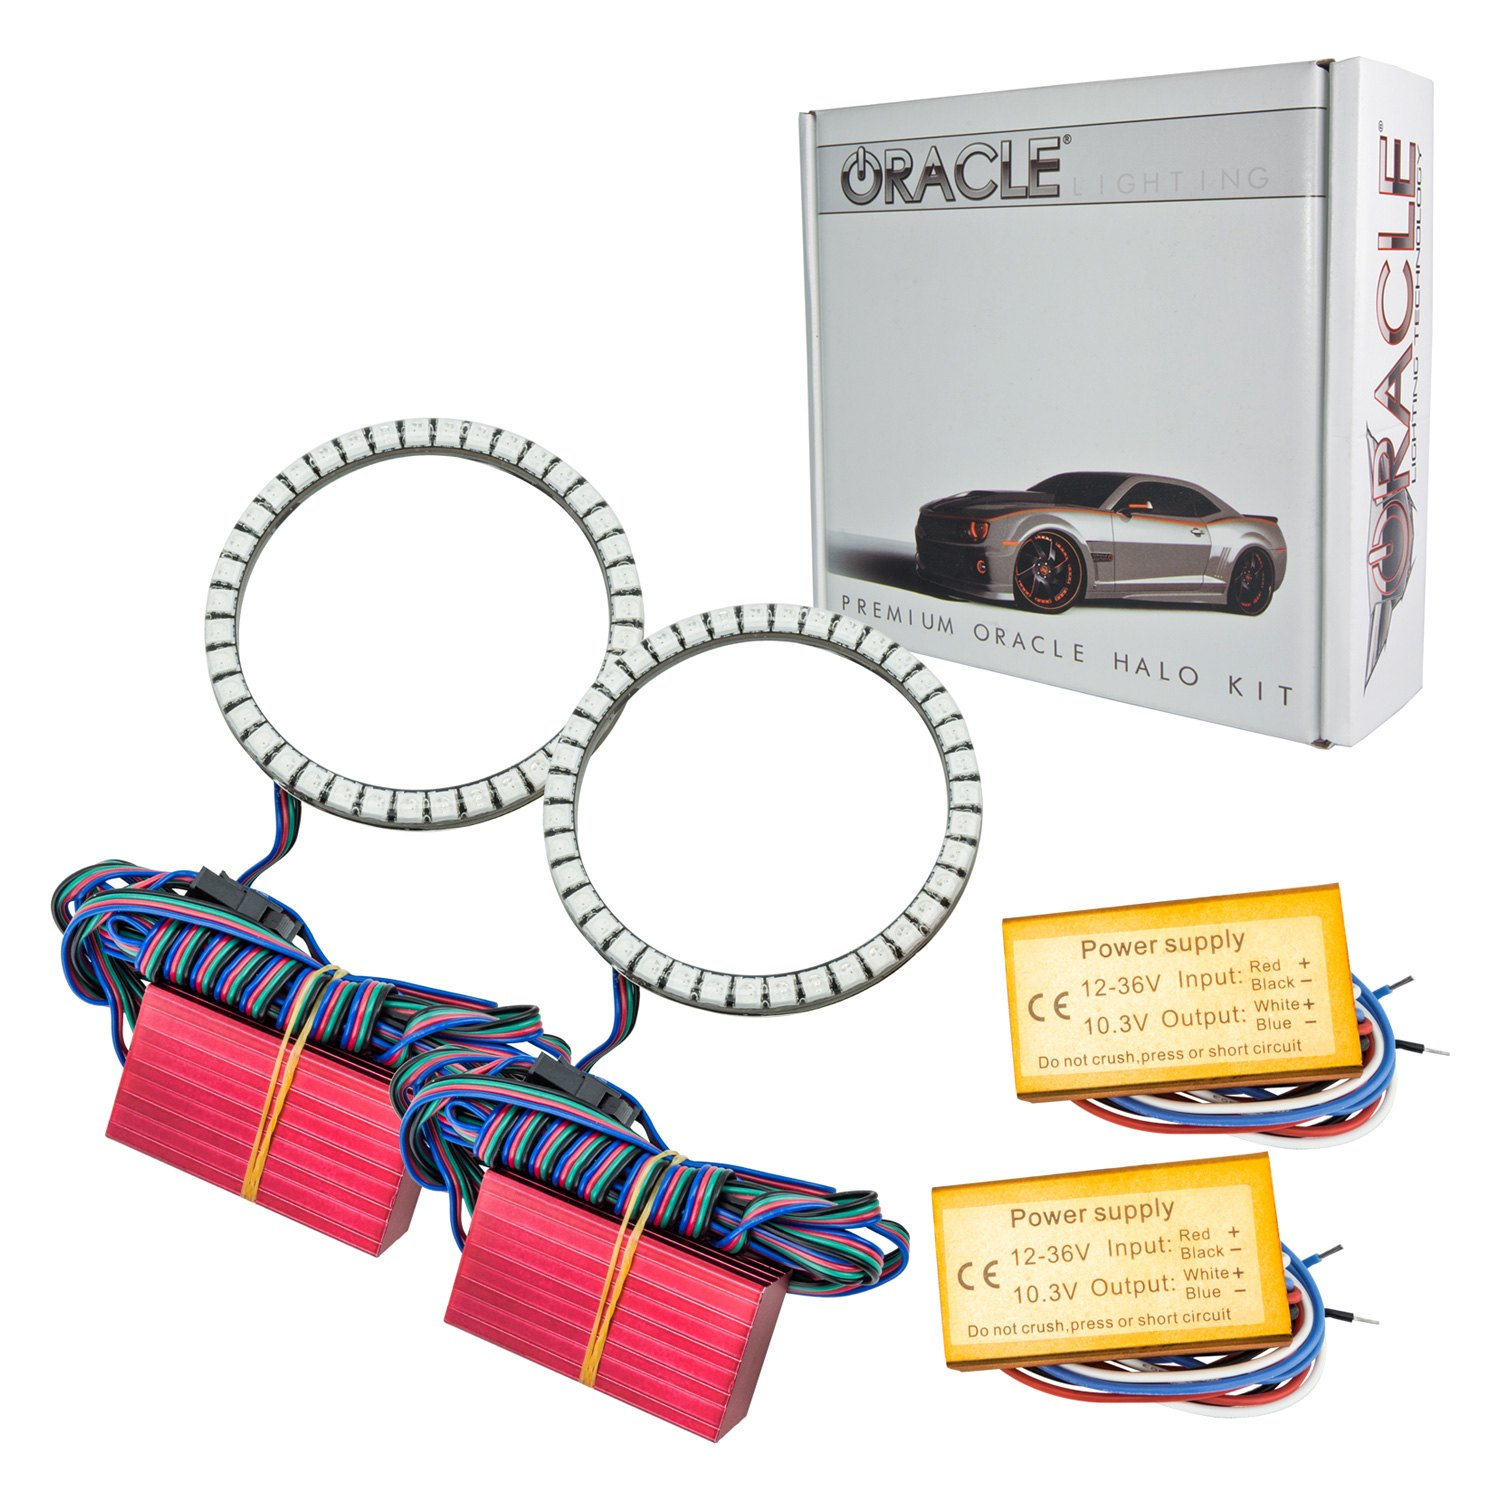 Oracle Lighting SMD Amber Waterproof Halo Kit for Fog Lights - Oracle Lighting 1271-005